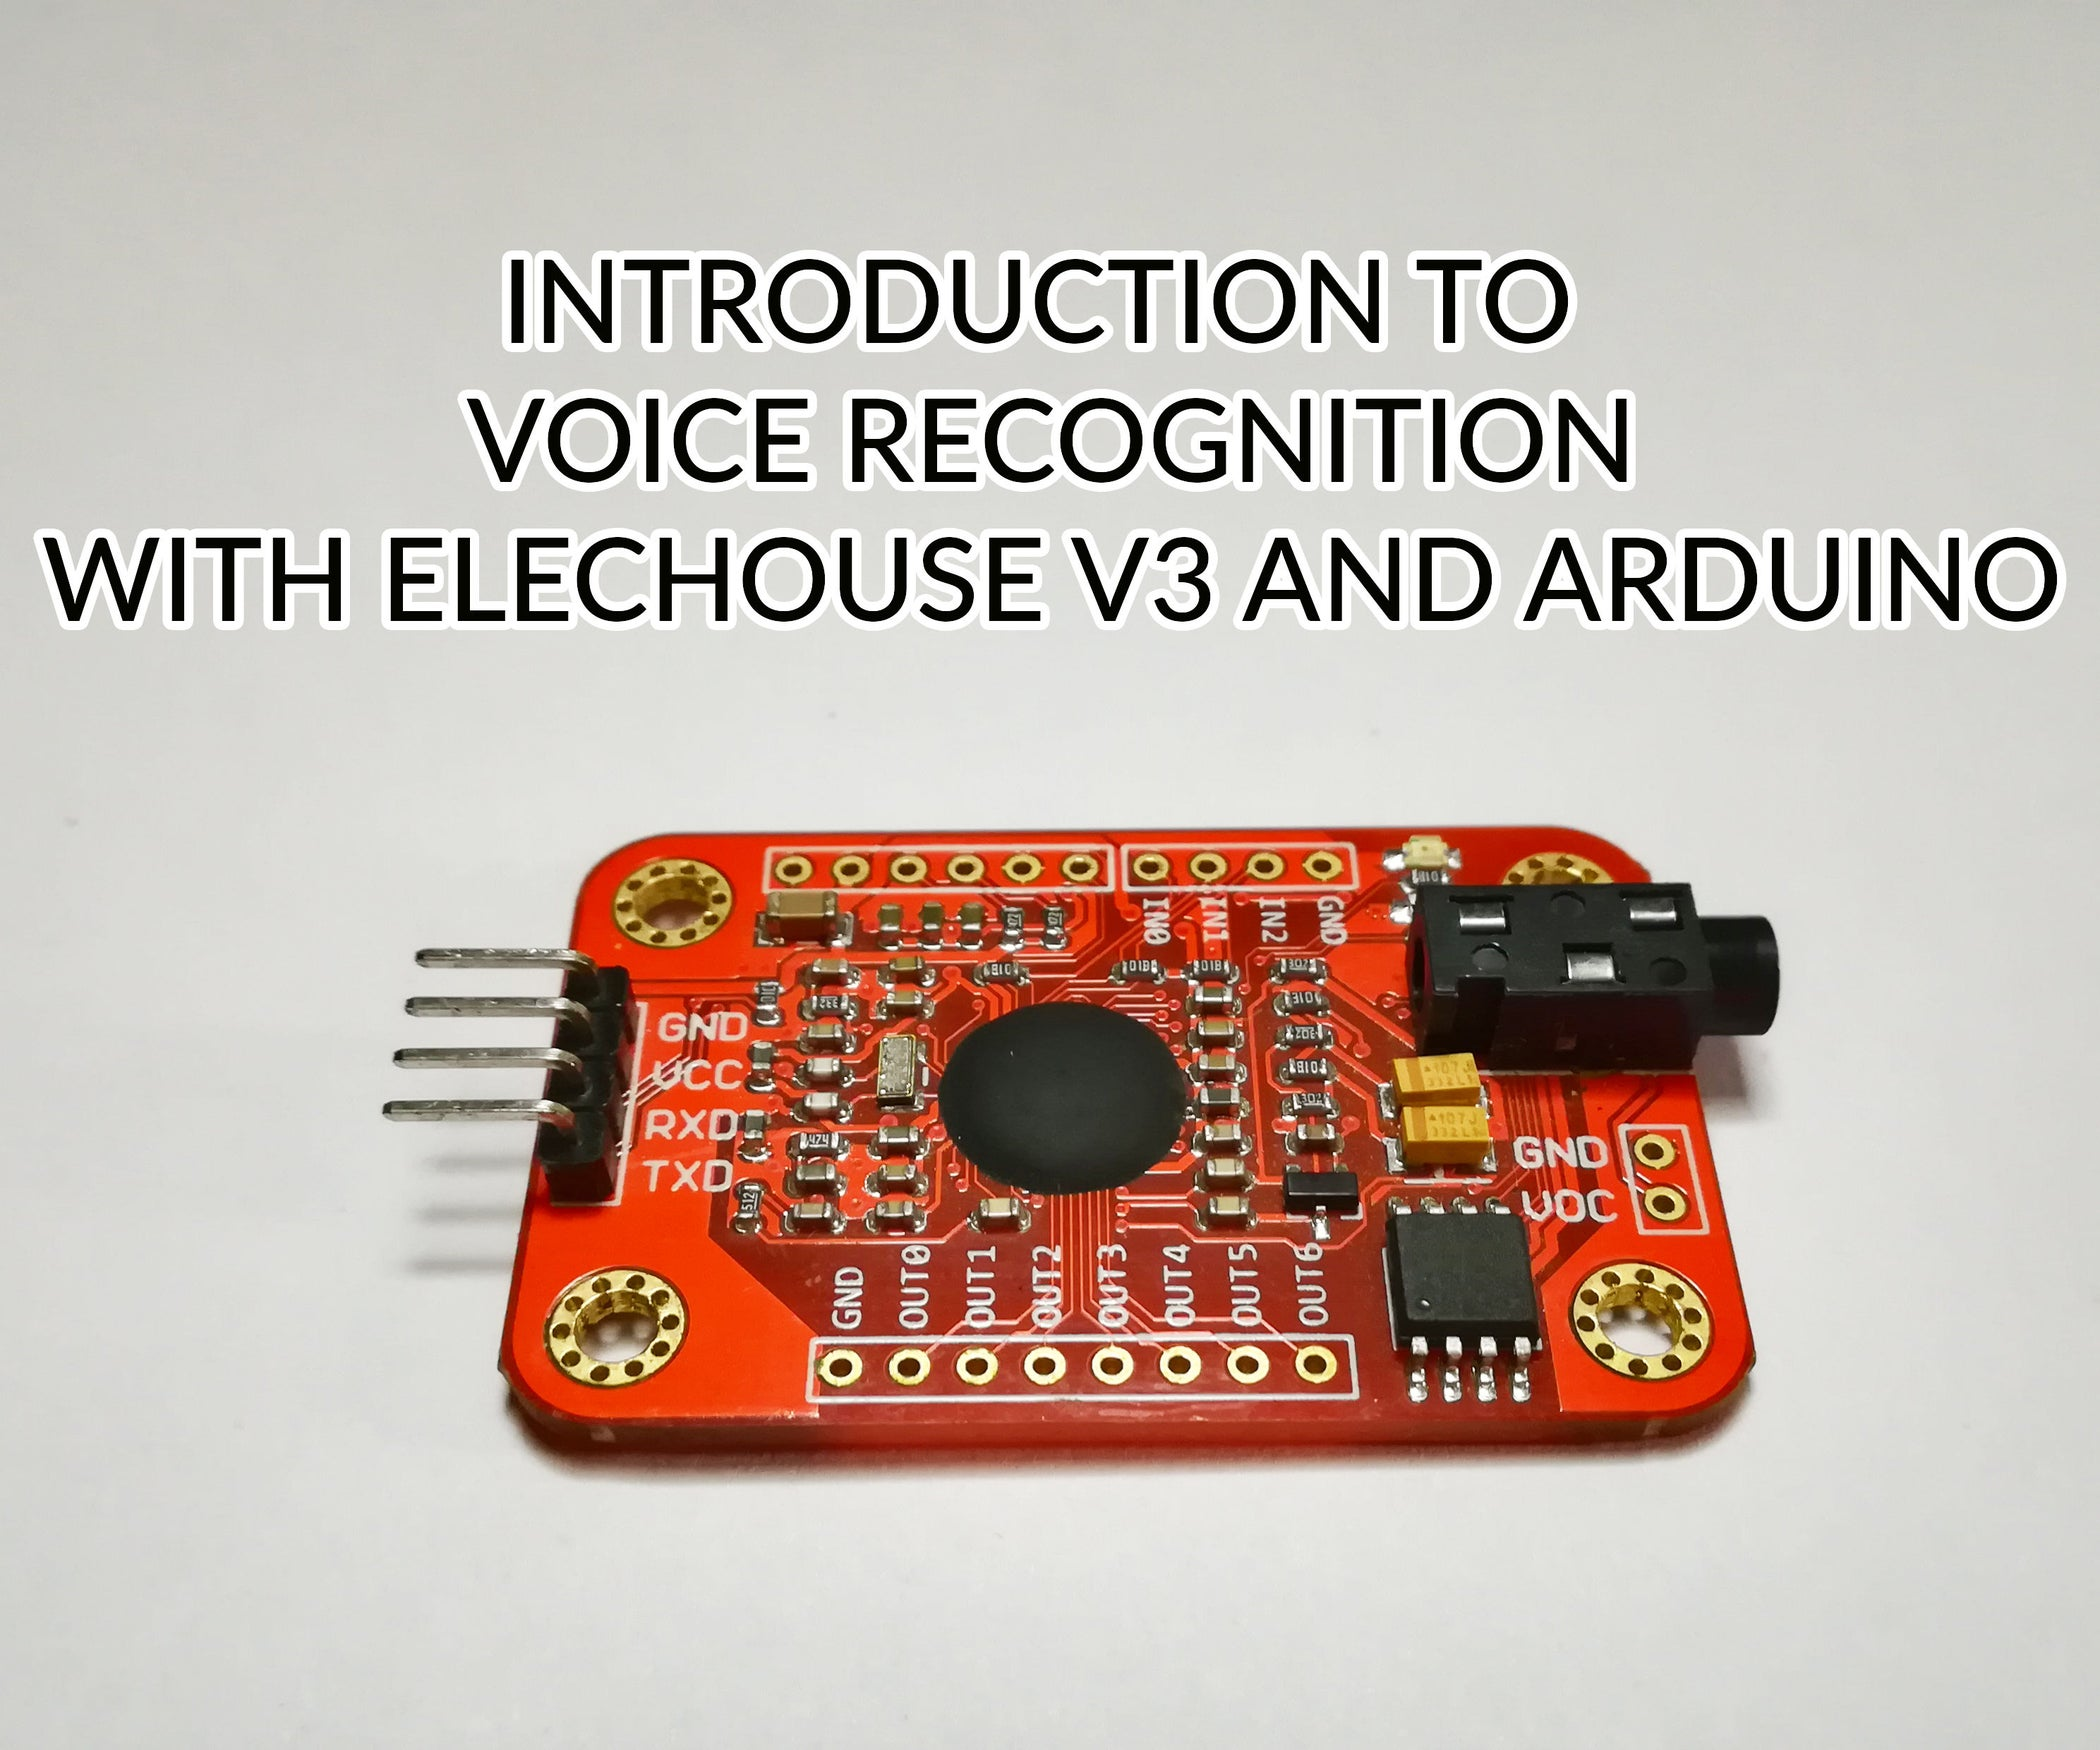 Introduction To Voice Recognition With Elechouse V3 And Arduino 4 Pin Circuit Die Cut Machine Cake On Pinterest Steps Pictures